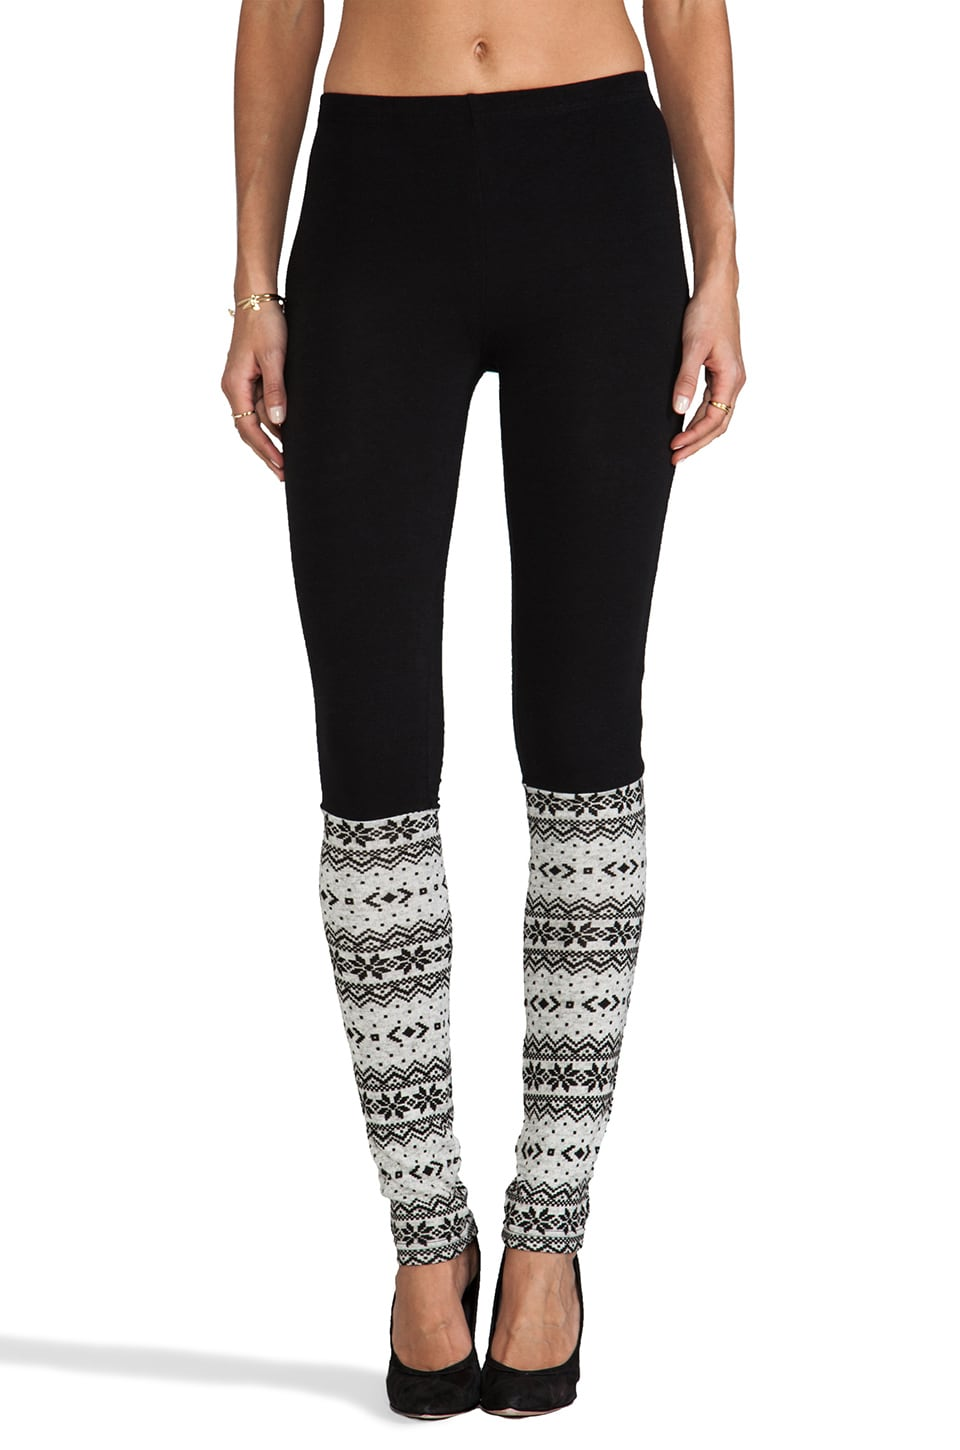 Plush Fair Isle Legwarmer Leggings in Black and Grey